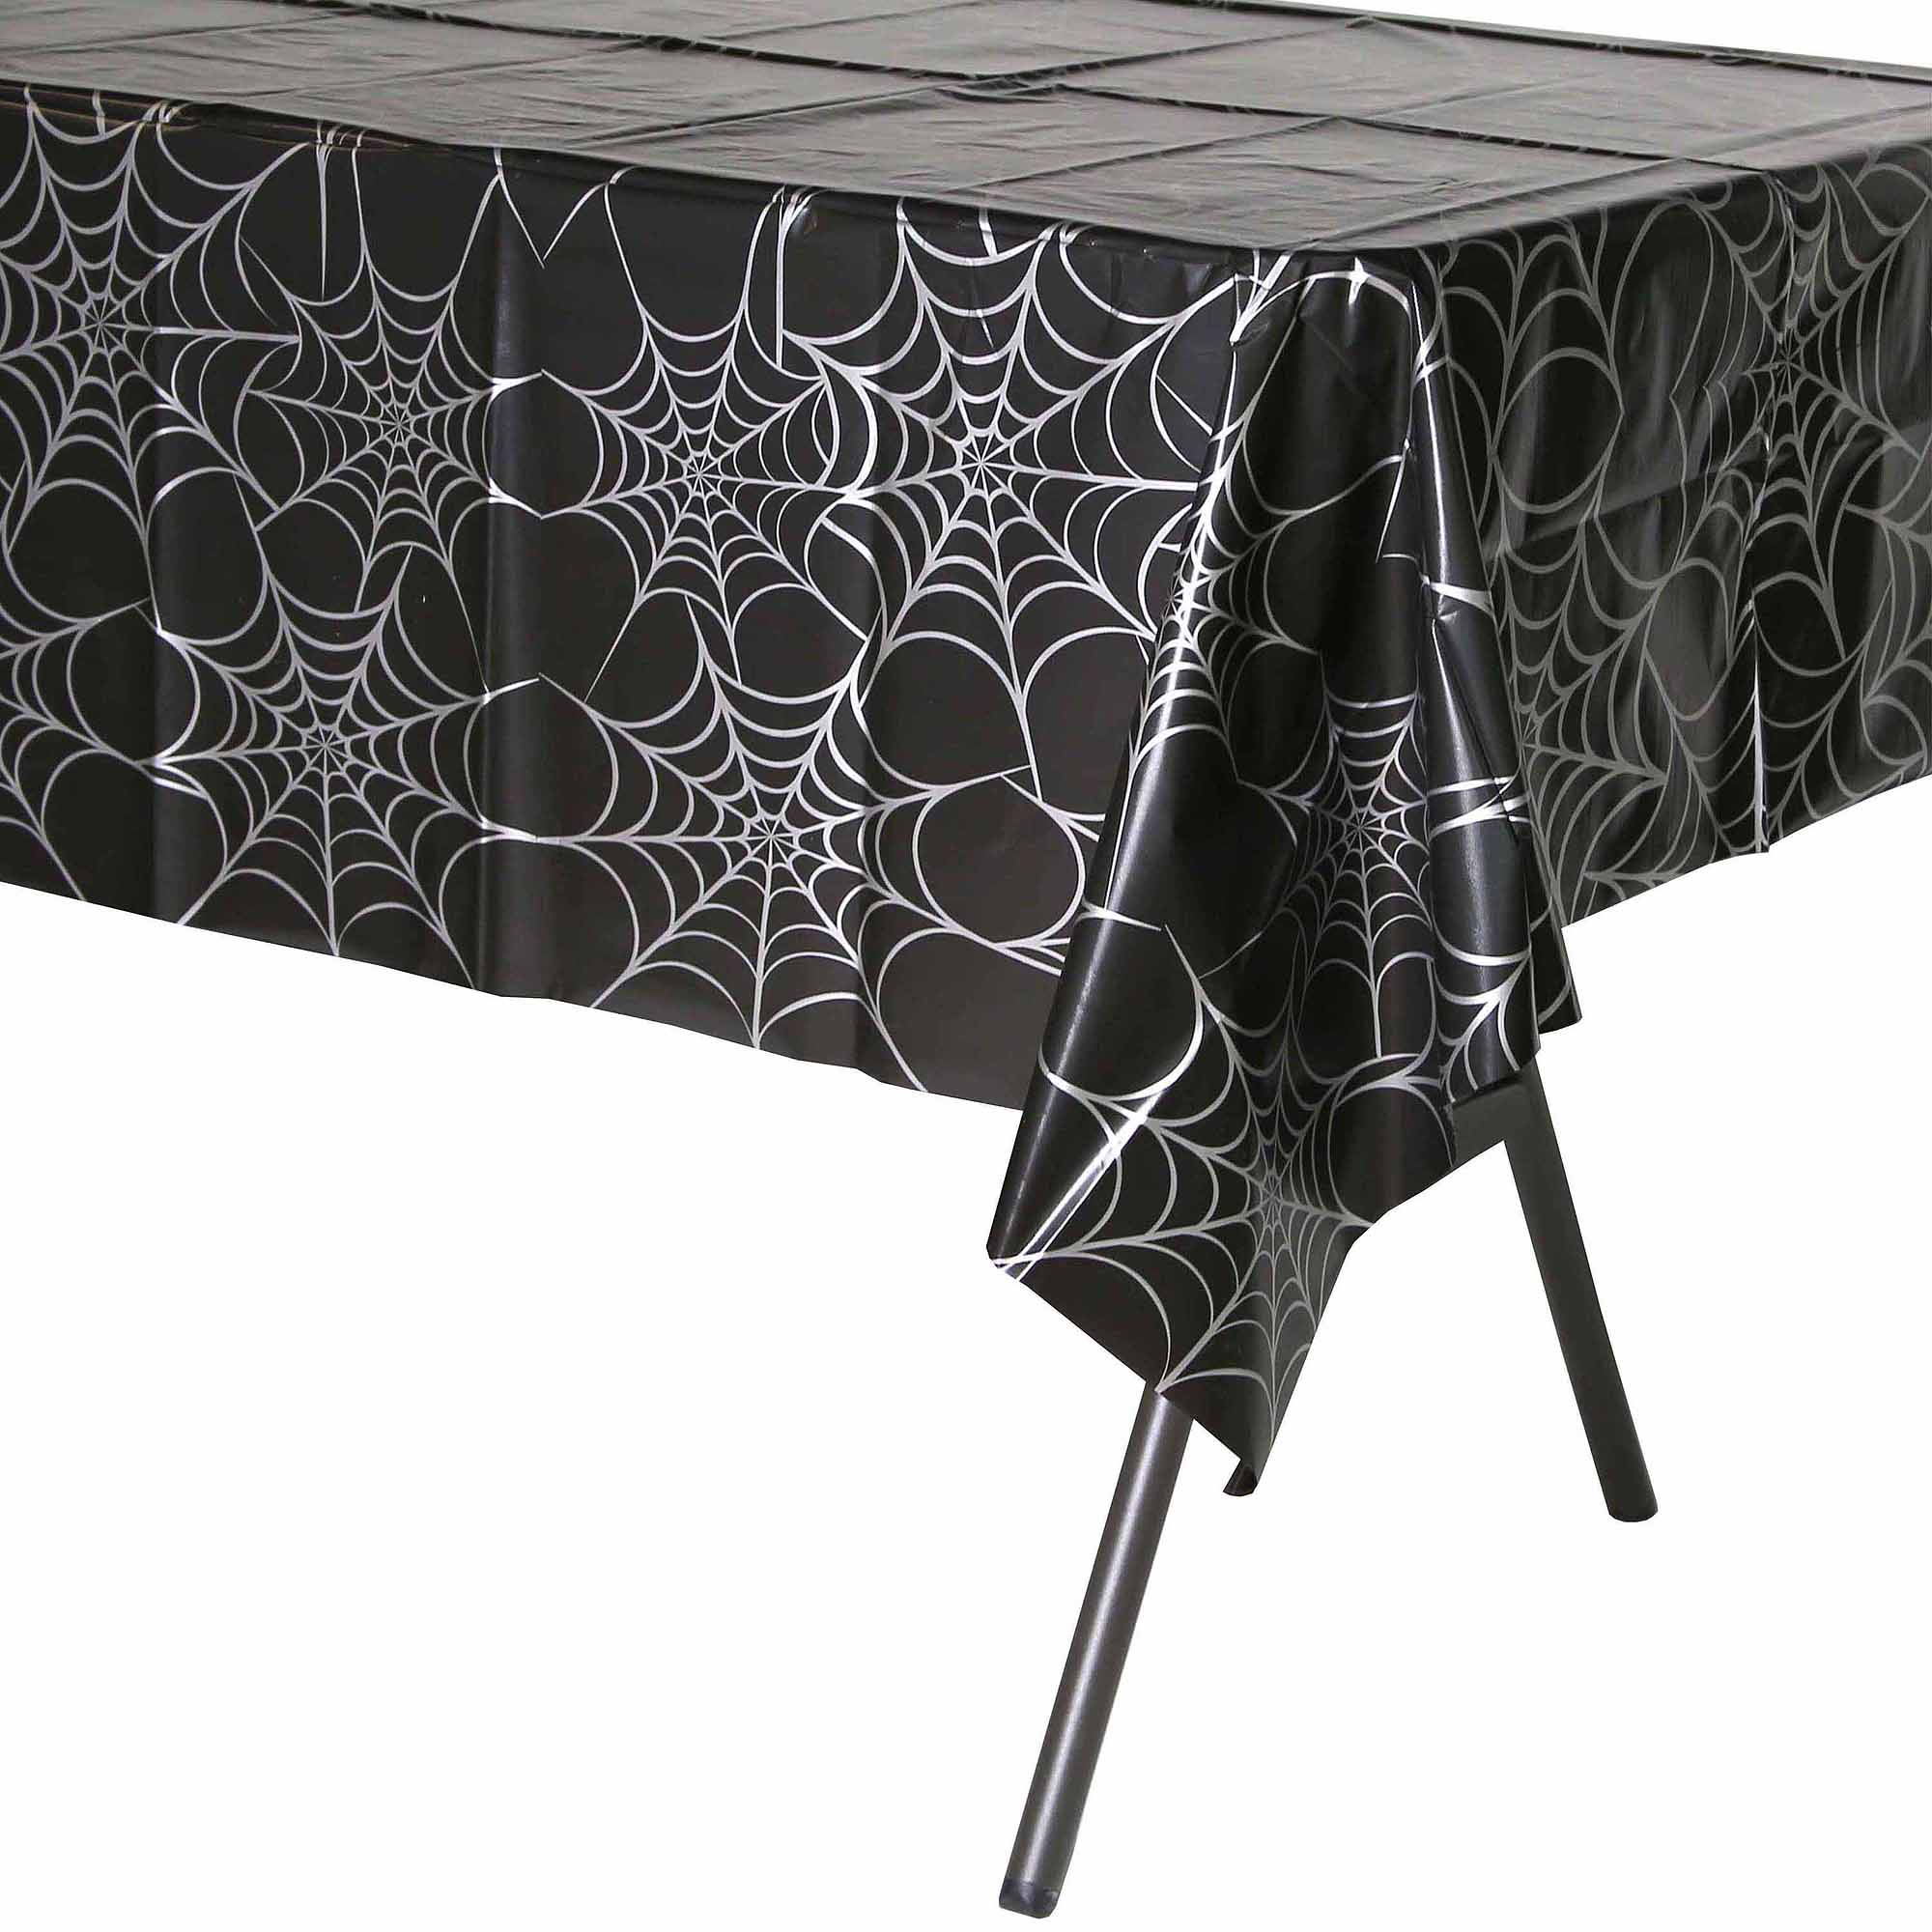 Spider Web Table Cover